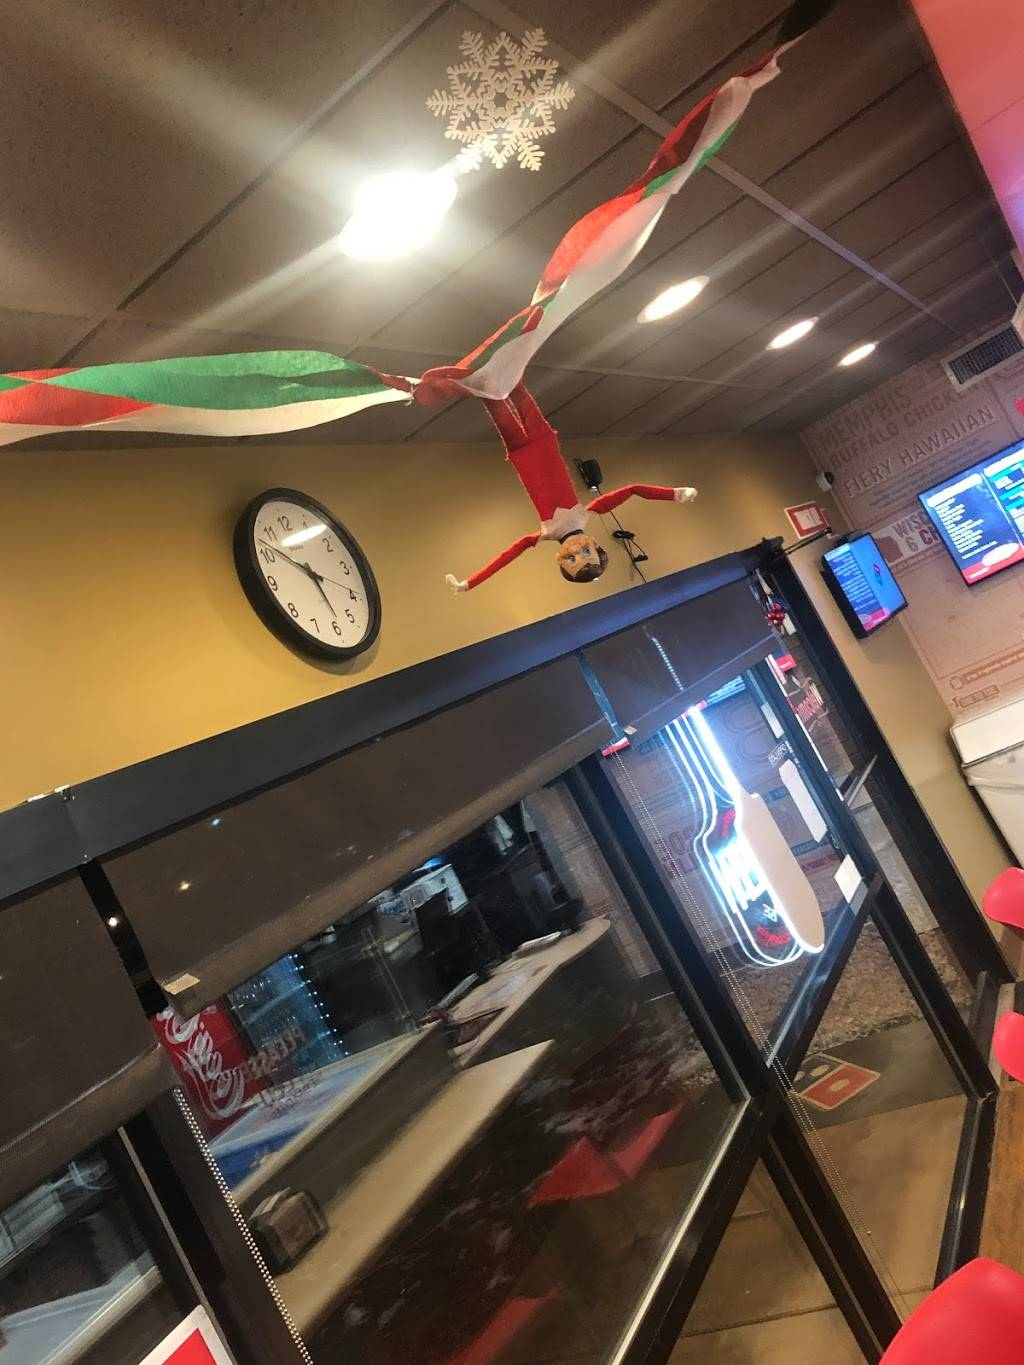 Dominos Pizza | meal delivery | 3311 London Rd, Eau Claire, WI 54701, USA | 7158333933 OR +1 715-833-3933